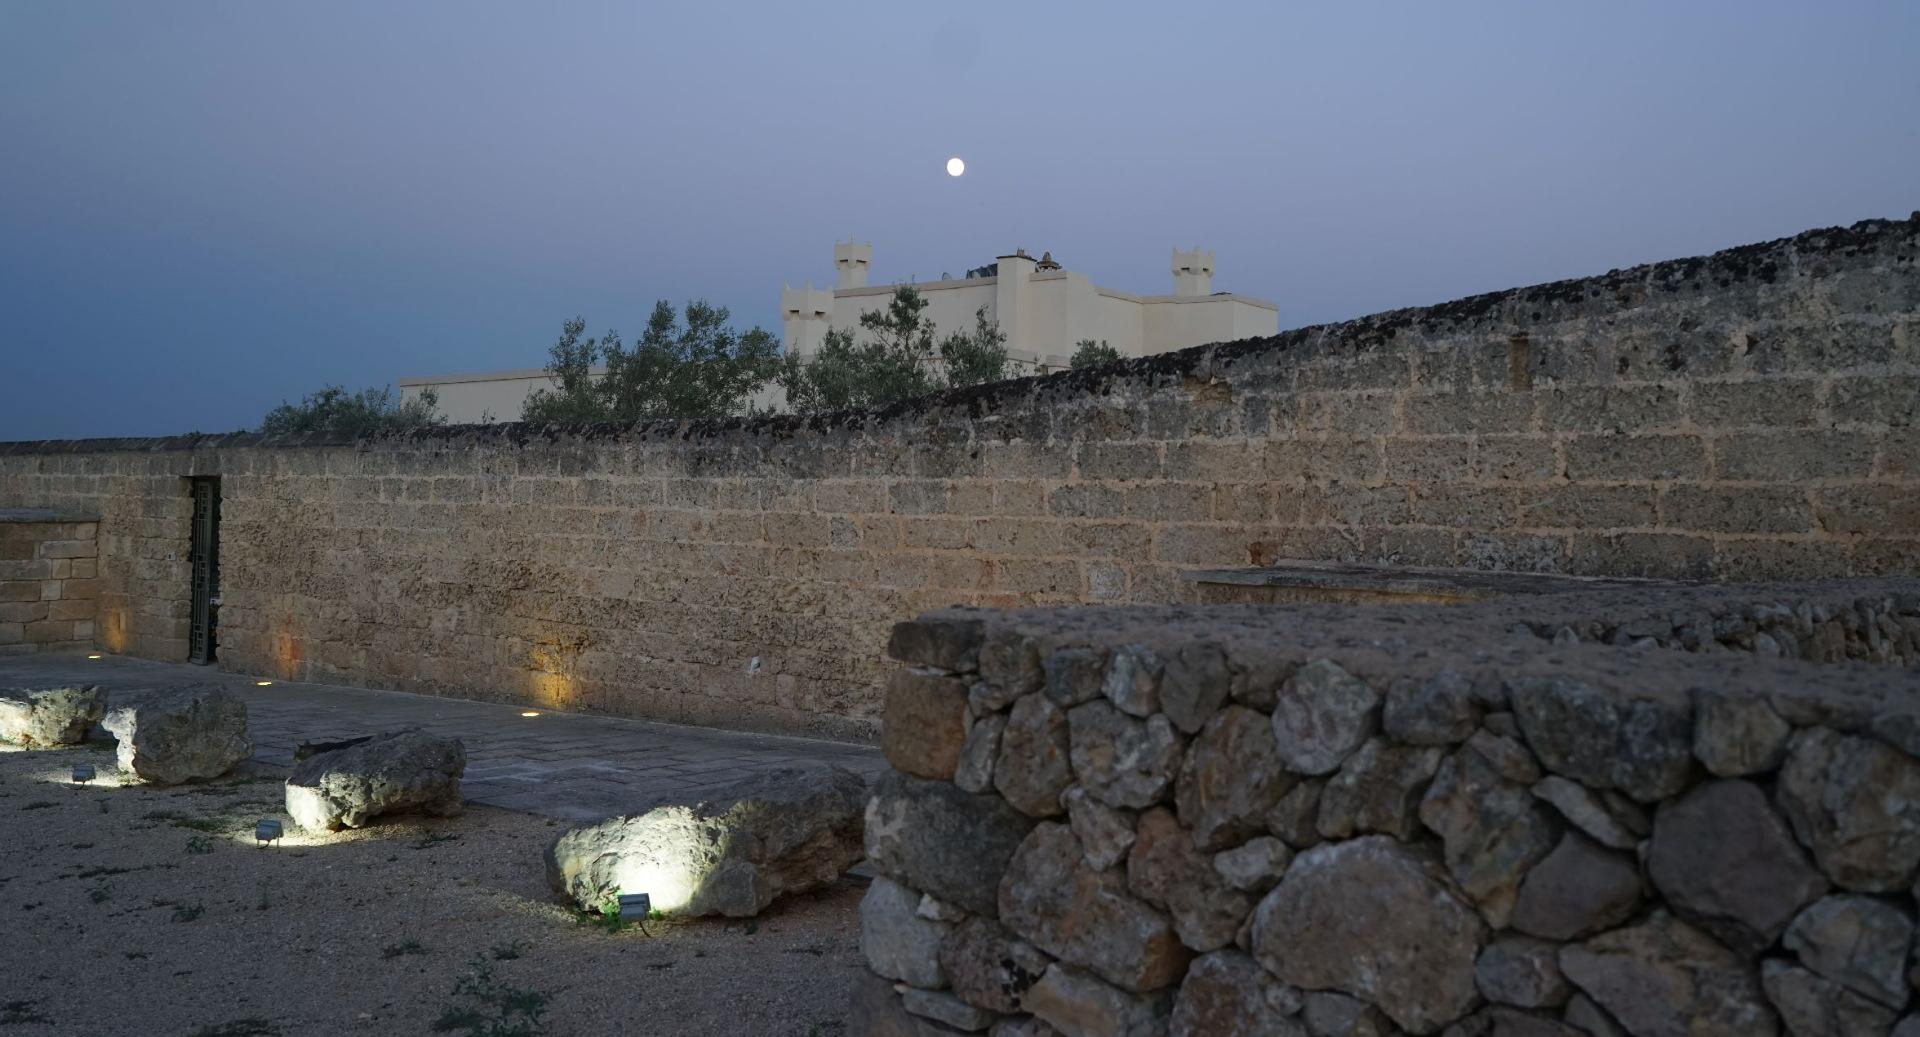 at night the view of the ancient walls